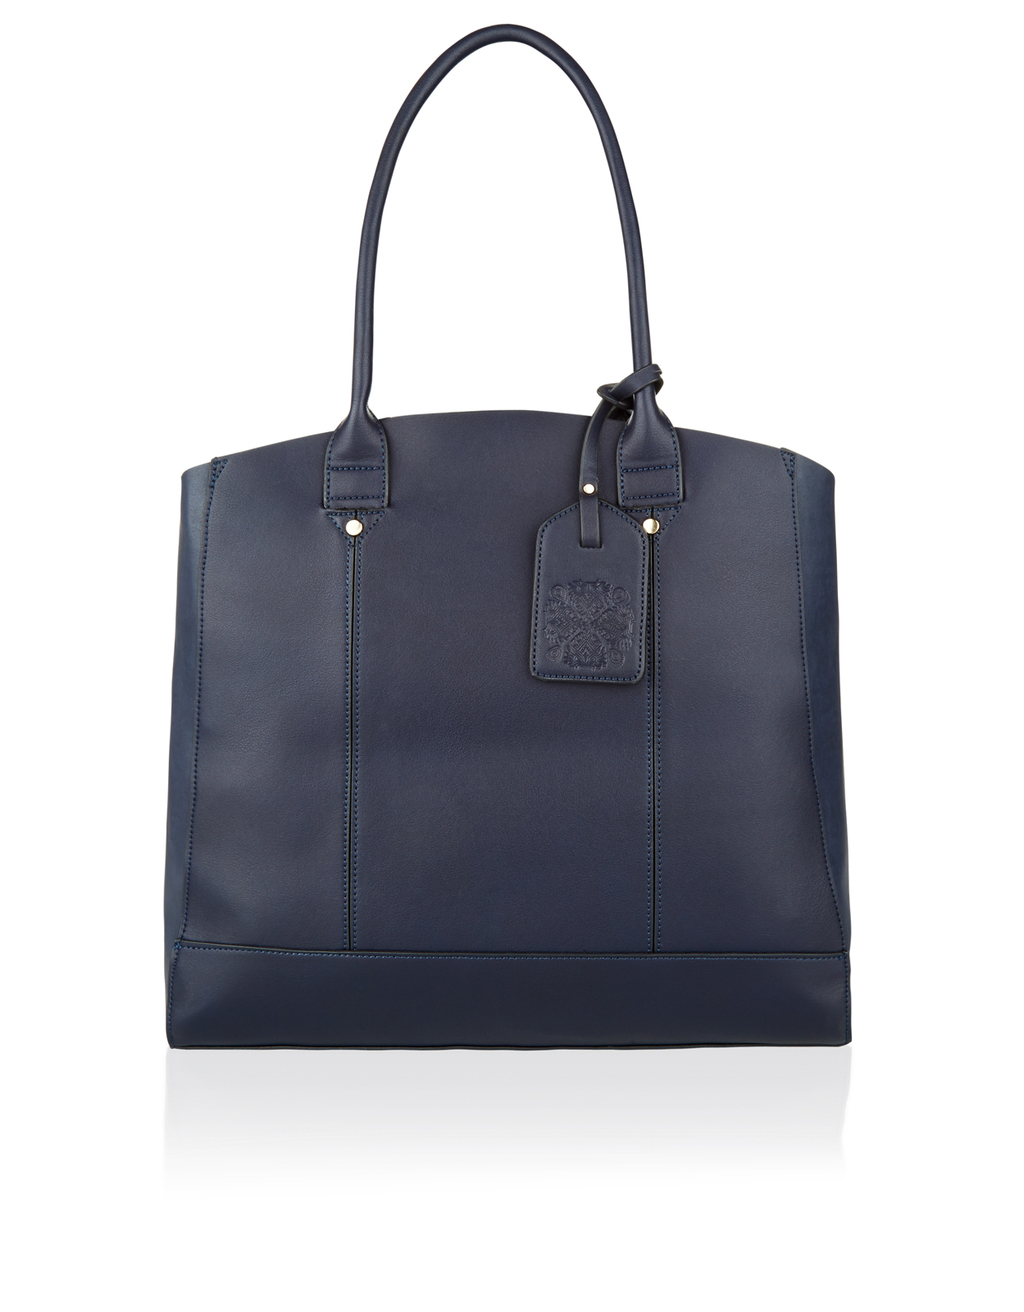 Pandora Structred Shopper Bag - predominant colour: navy; occasions: casual, work, creative work; type of pattern: standard; style: tote; length: hand carry; size: oversized; material: faux leather; pattern: plain; finish: plain; season: s/s 2016; wardrobe: investment